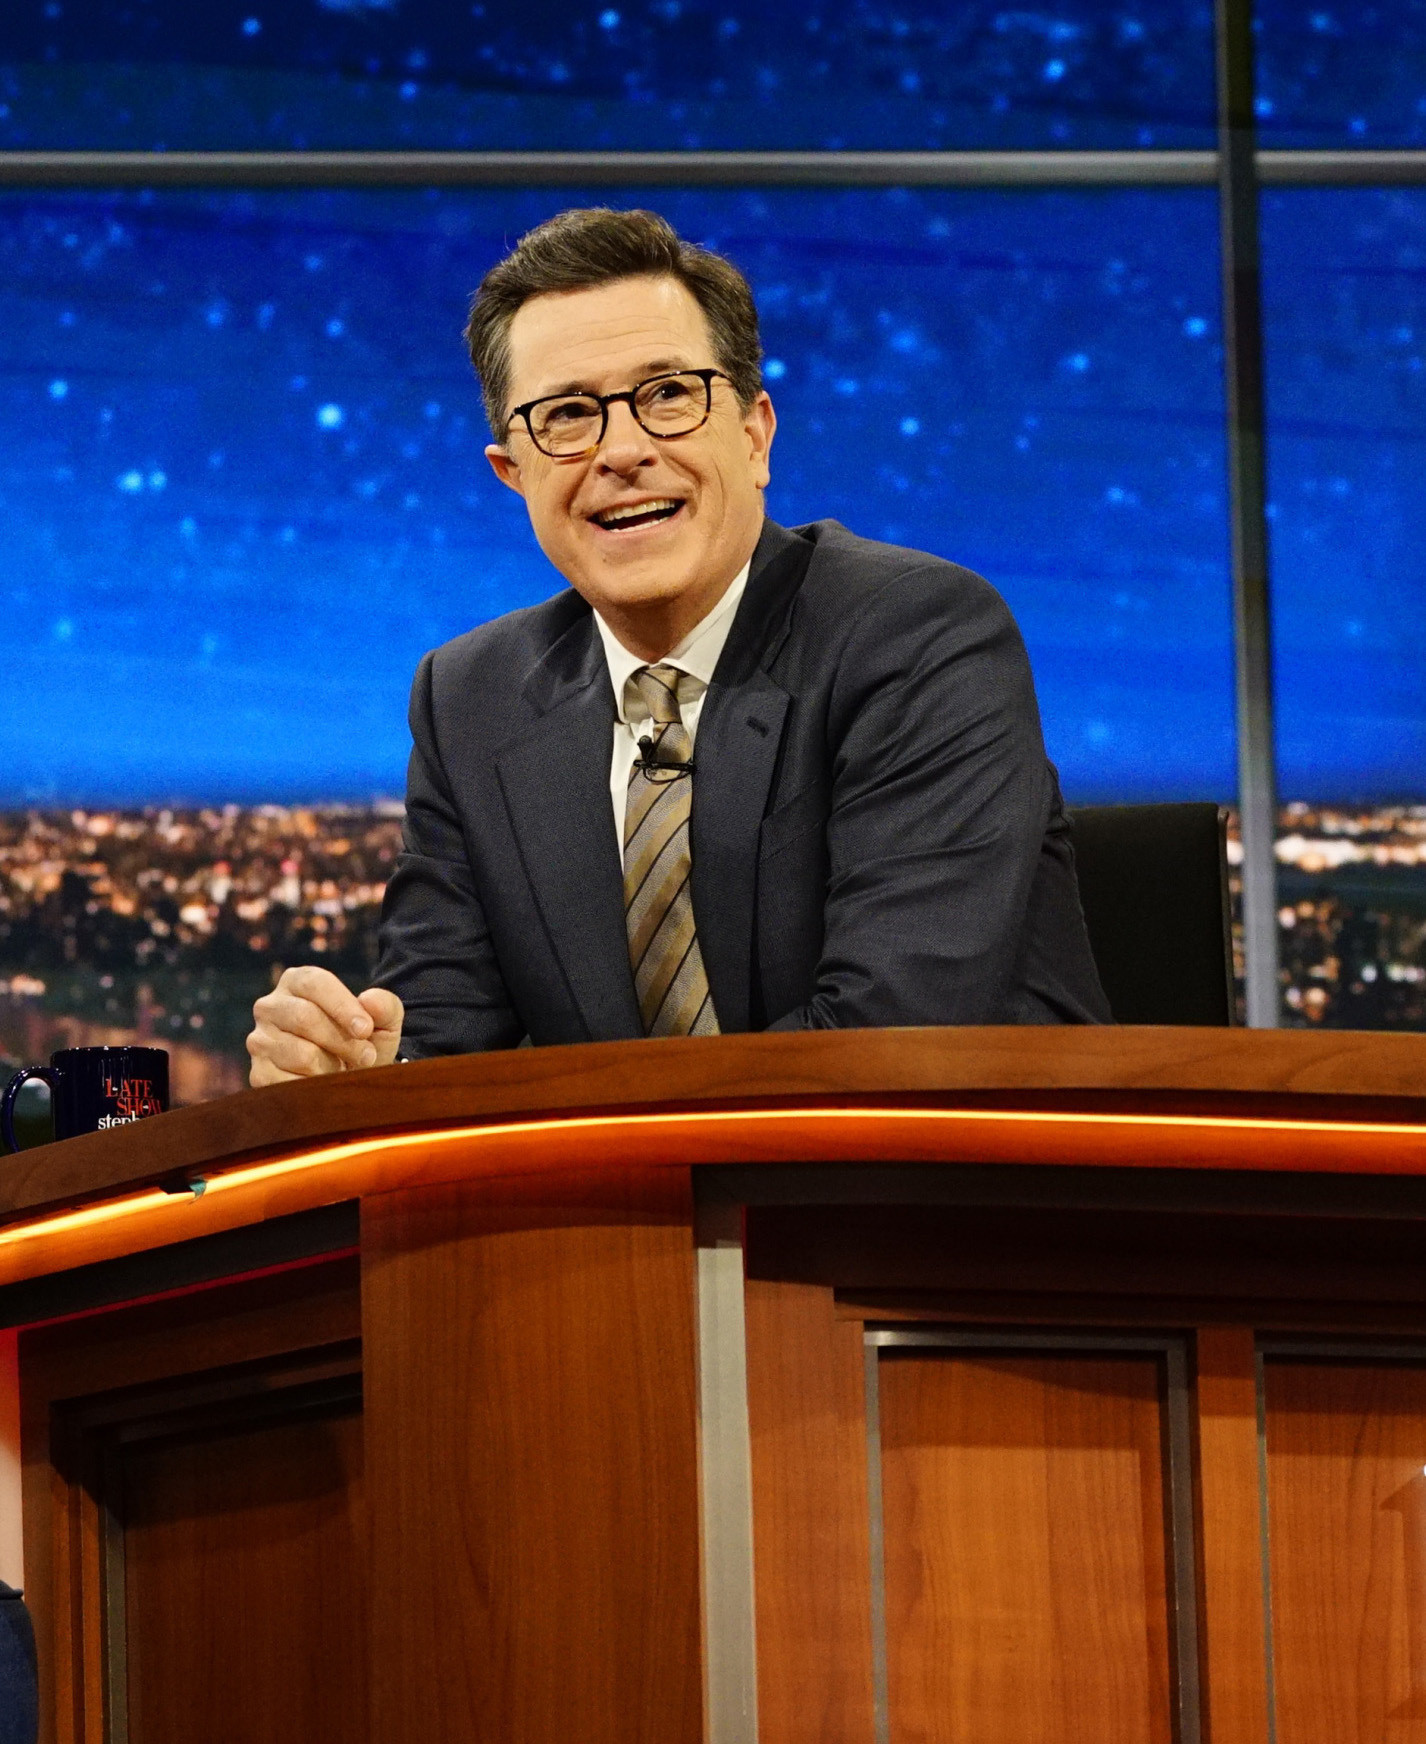 Colbert Responds To #FireColbert Backlash After Trump